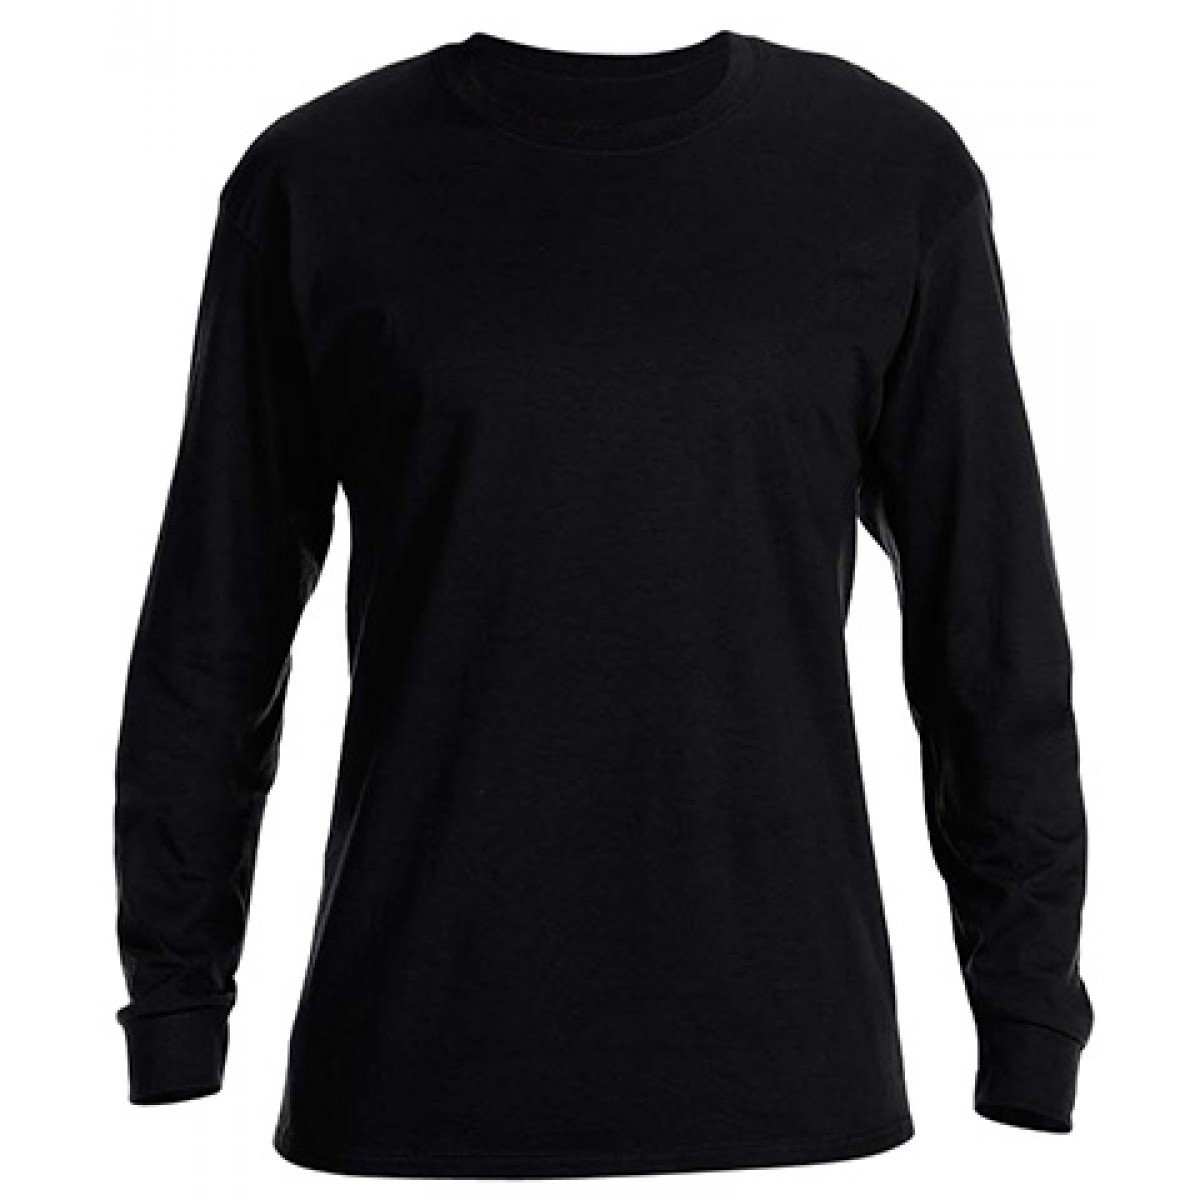 Basic Long Sleeve Crew Neck -Black-L